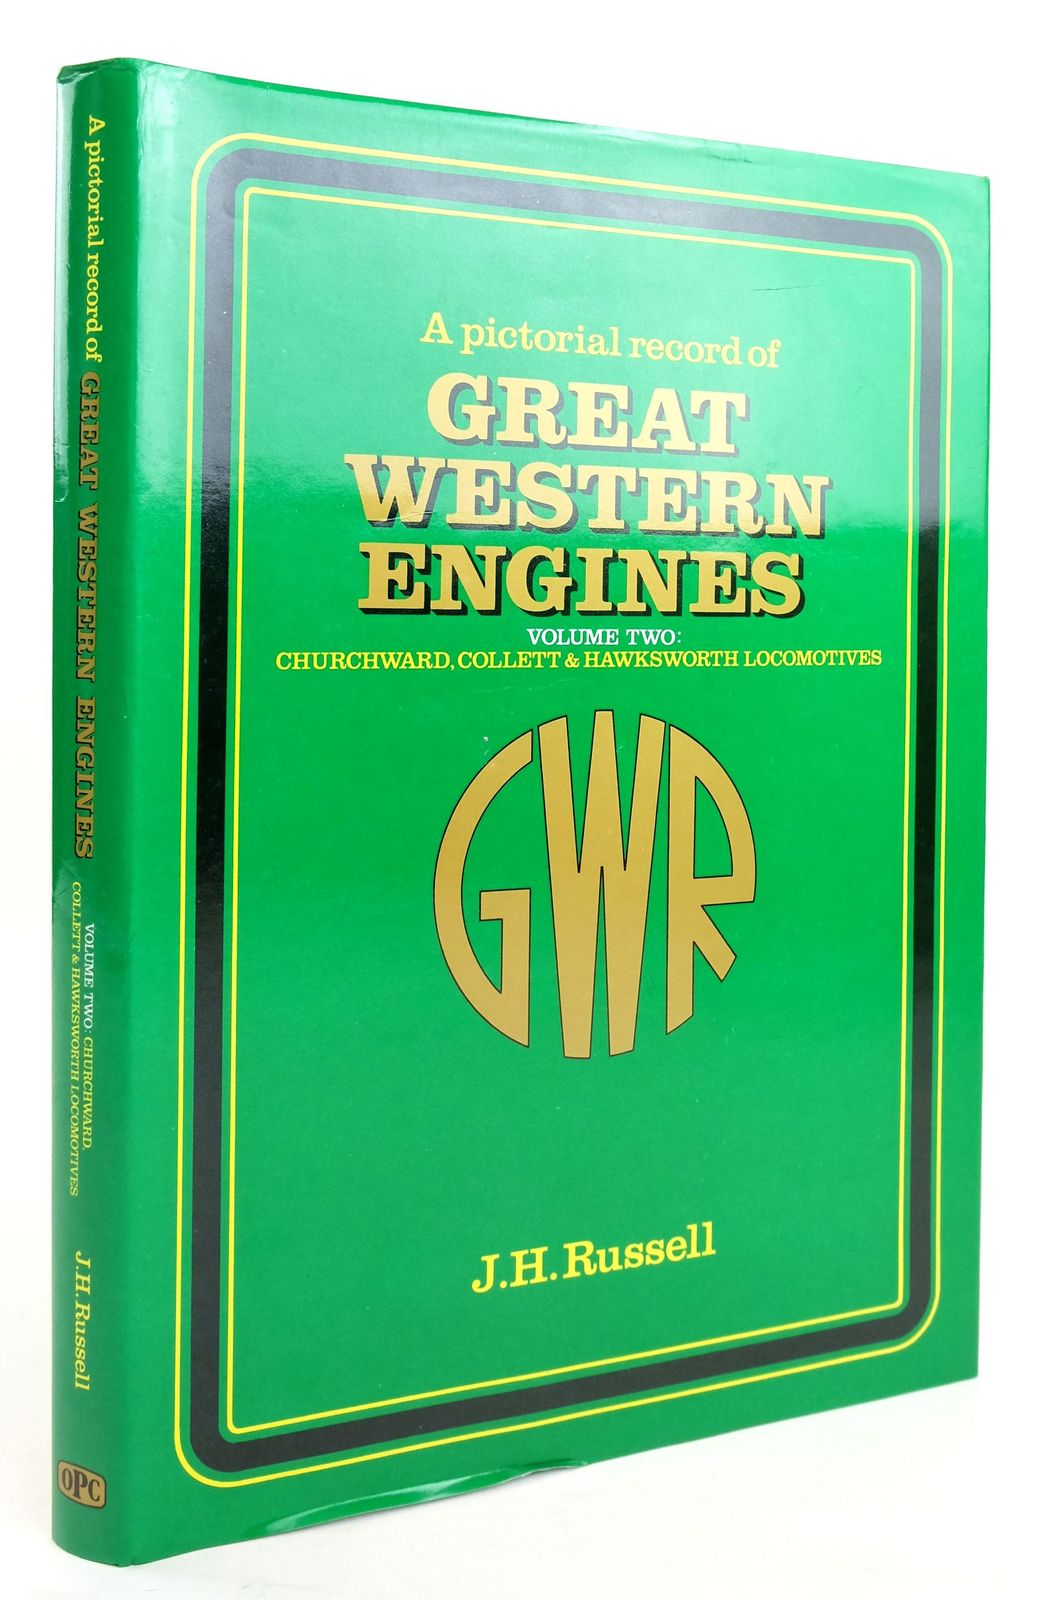 Photo of A PICTORIAL RECORD OF GREAT WESTERN ENGINES VOLUME TWO written by Russell, J.H. published by Oxford Publishing Co (STOCK CODE: 1820189)  for sale by Stella & Rose's Books